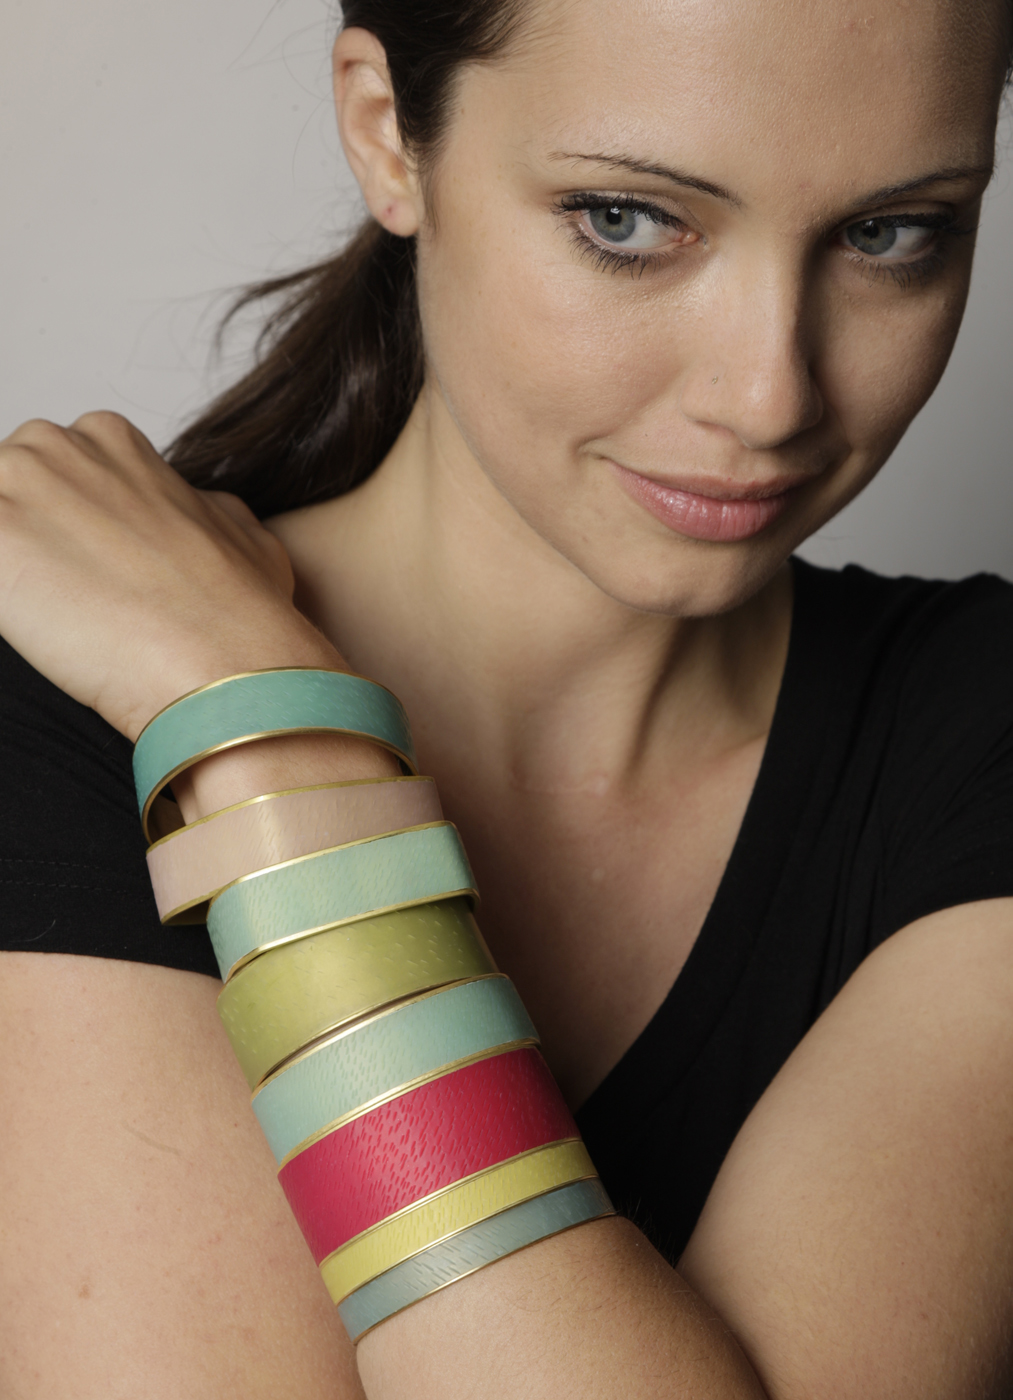 colored cropped bracelets, shelly.jpg